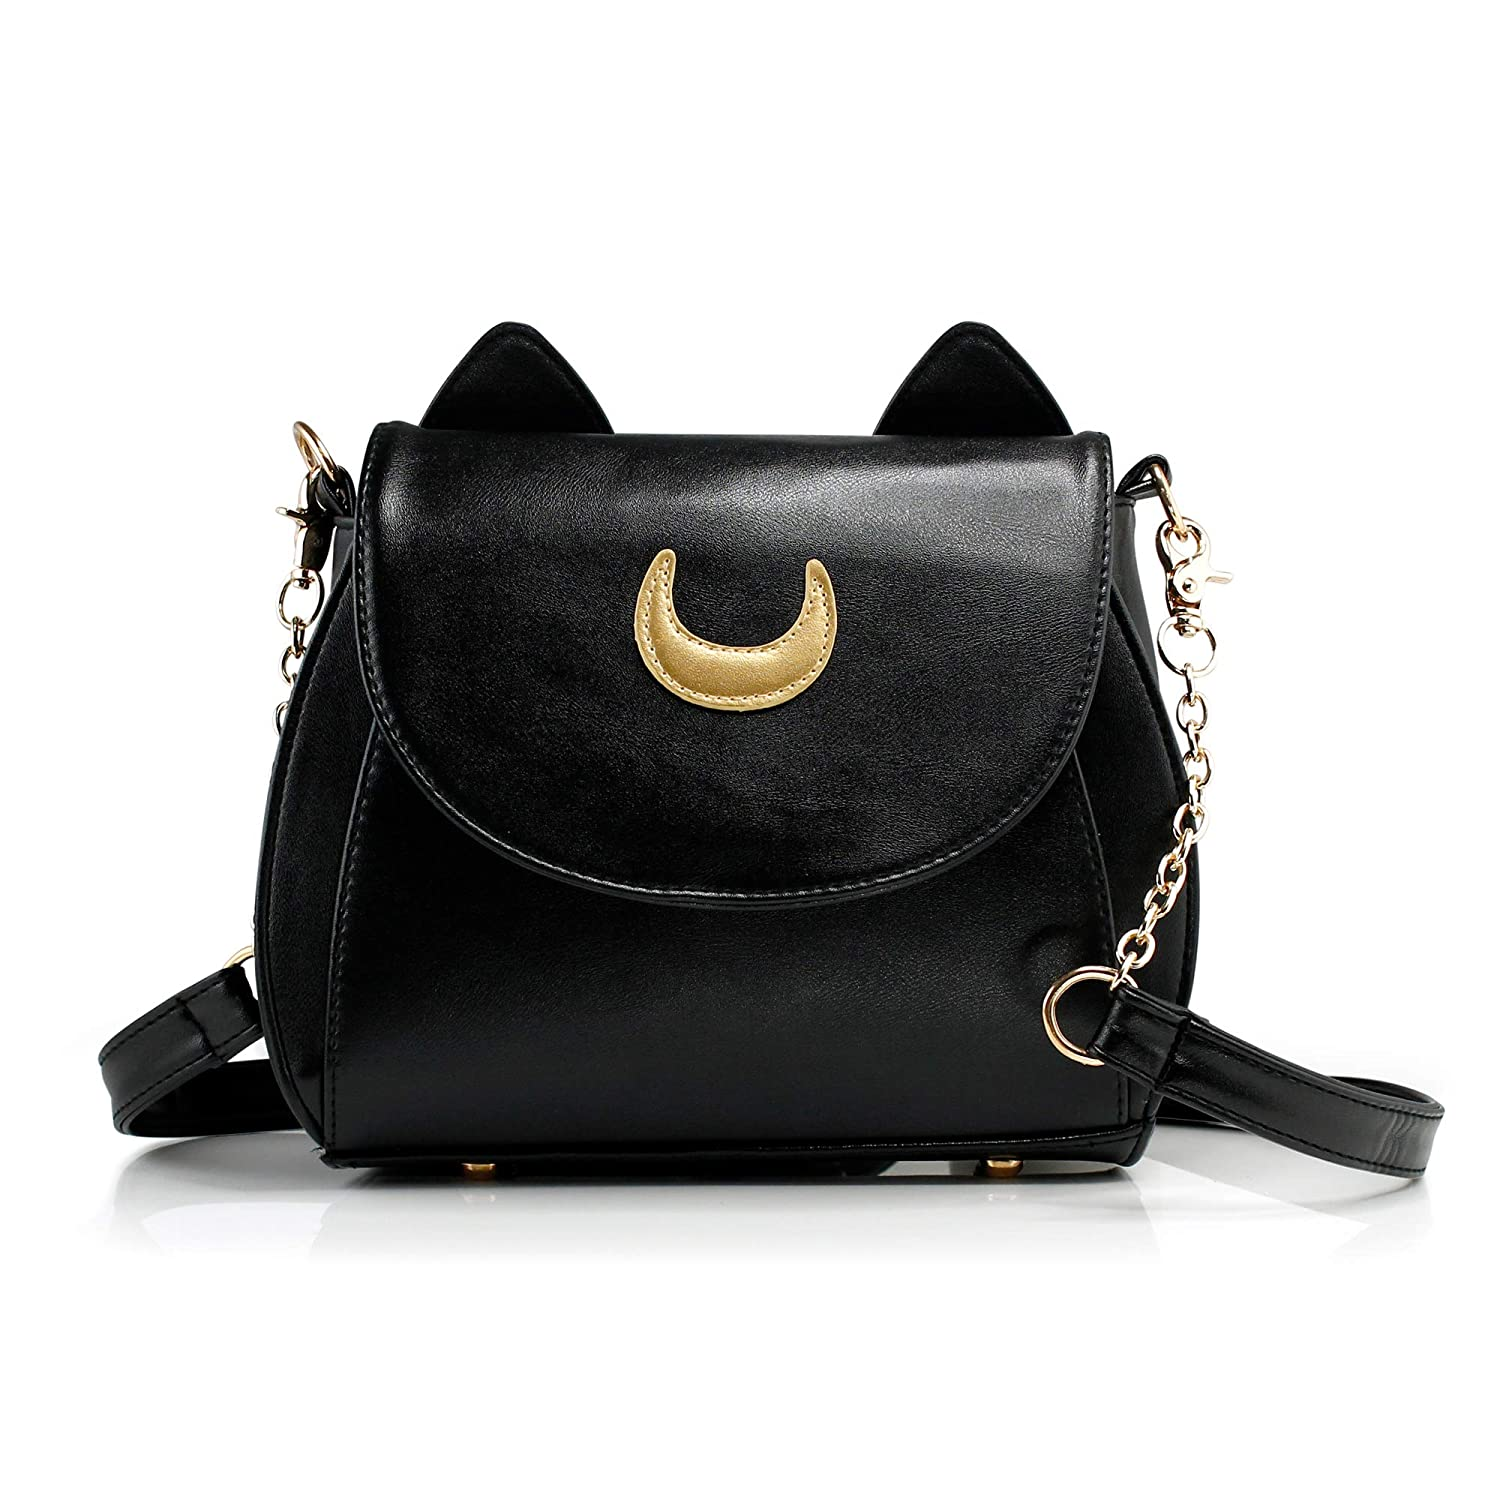 Oct17 Moon Luna Purse Kitty Cat satchel shoulder Bag Designer Women Handbag Tote PU Leather Sailor School